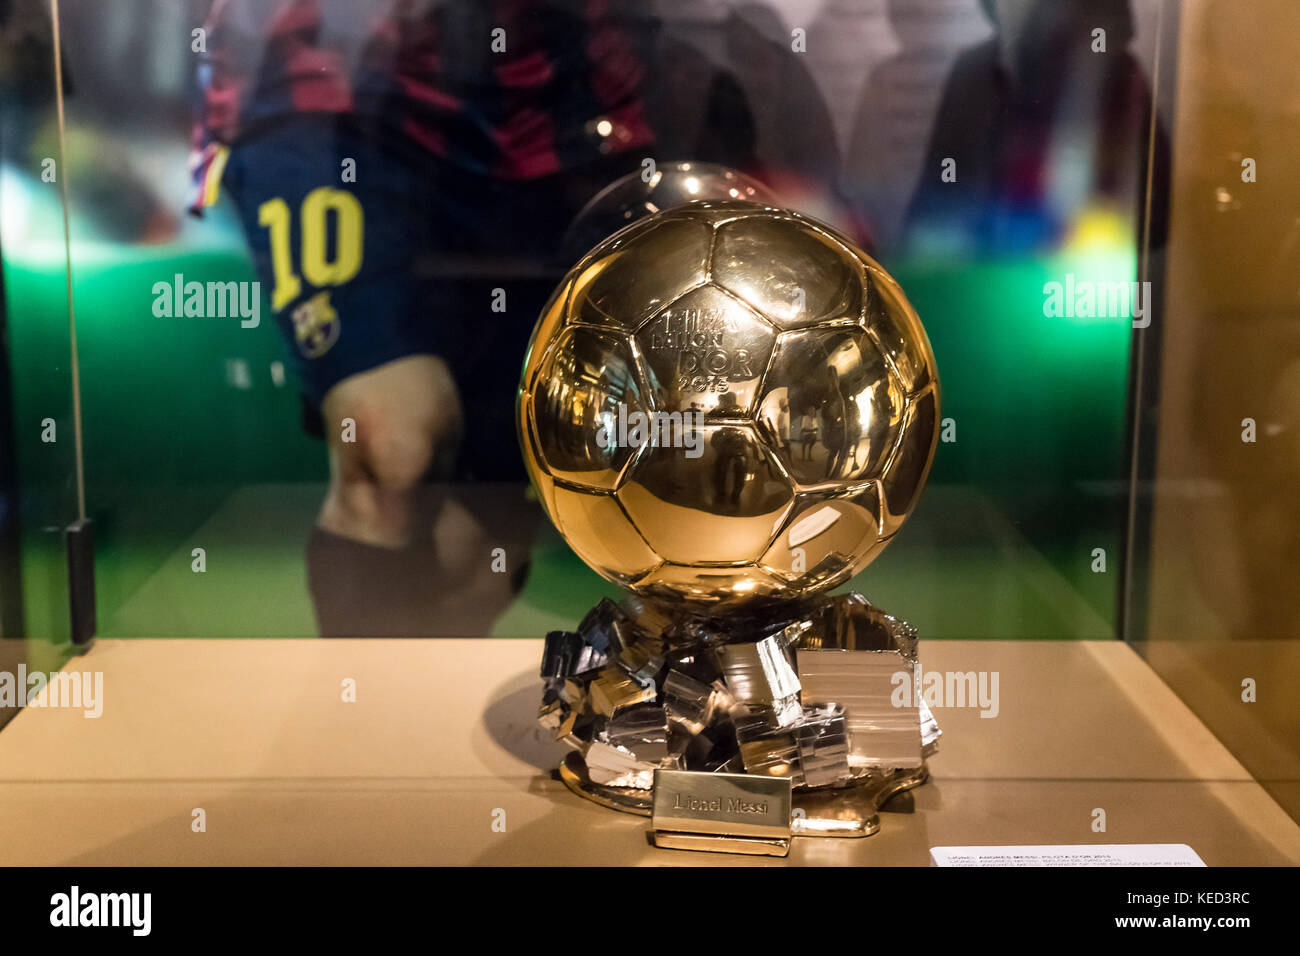 Ballon d'Or awarded to Lionel Messi on display at Camp Nou stadium, Barcelona, Spain. - Stock Image